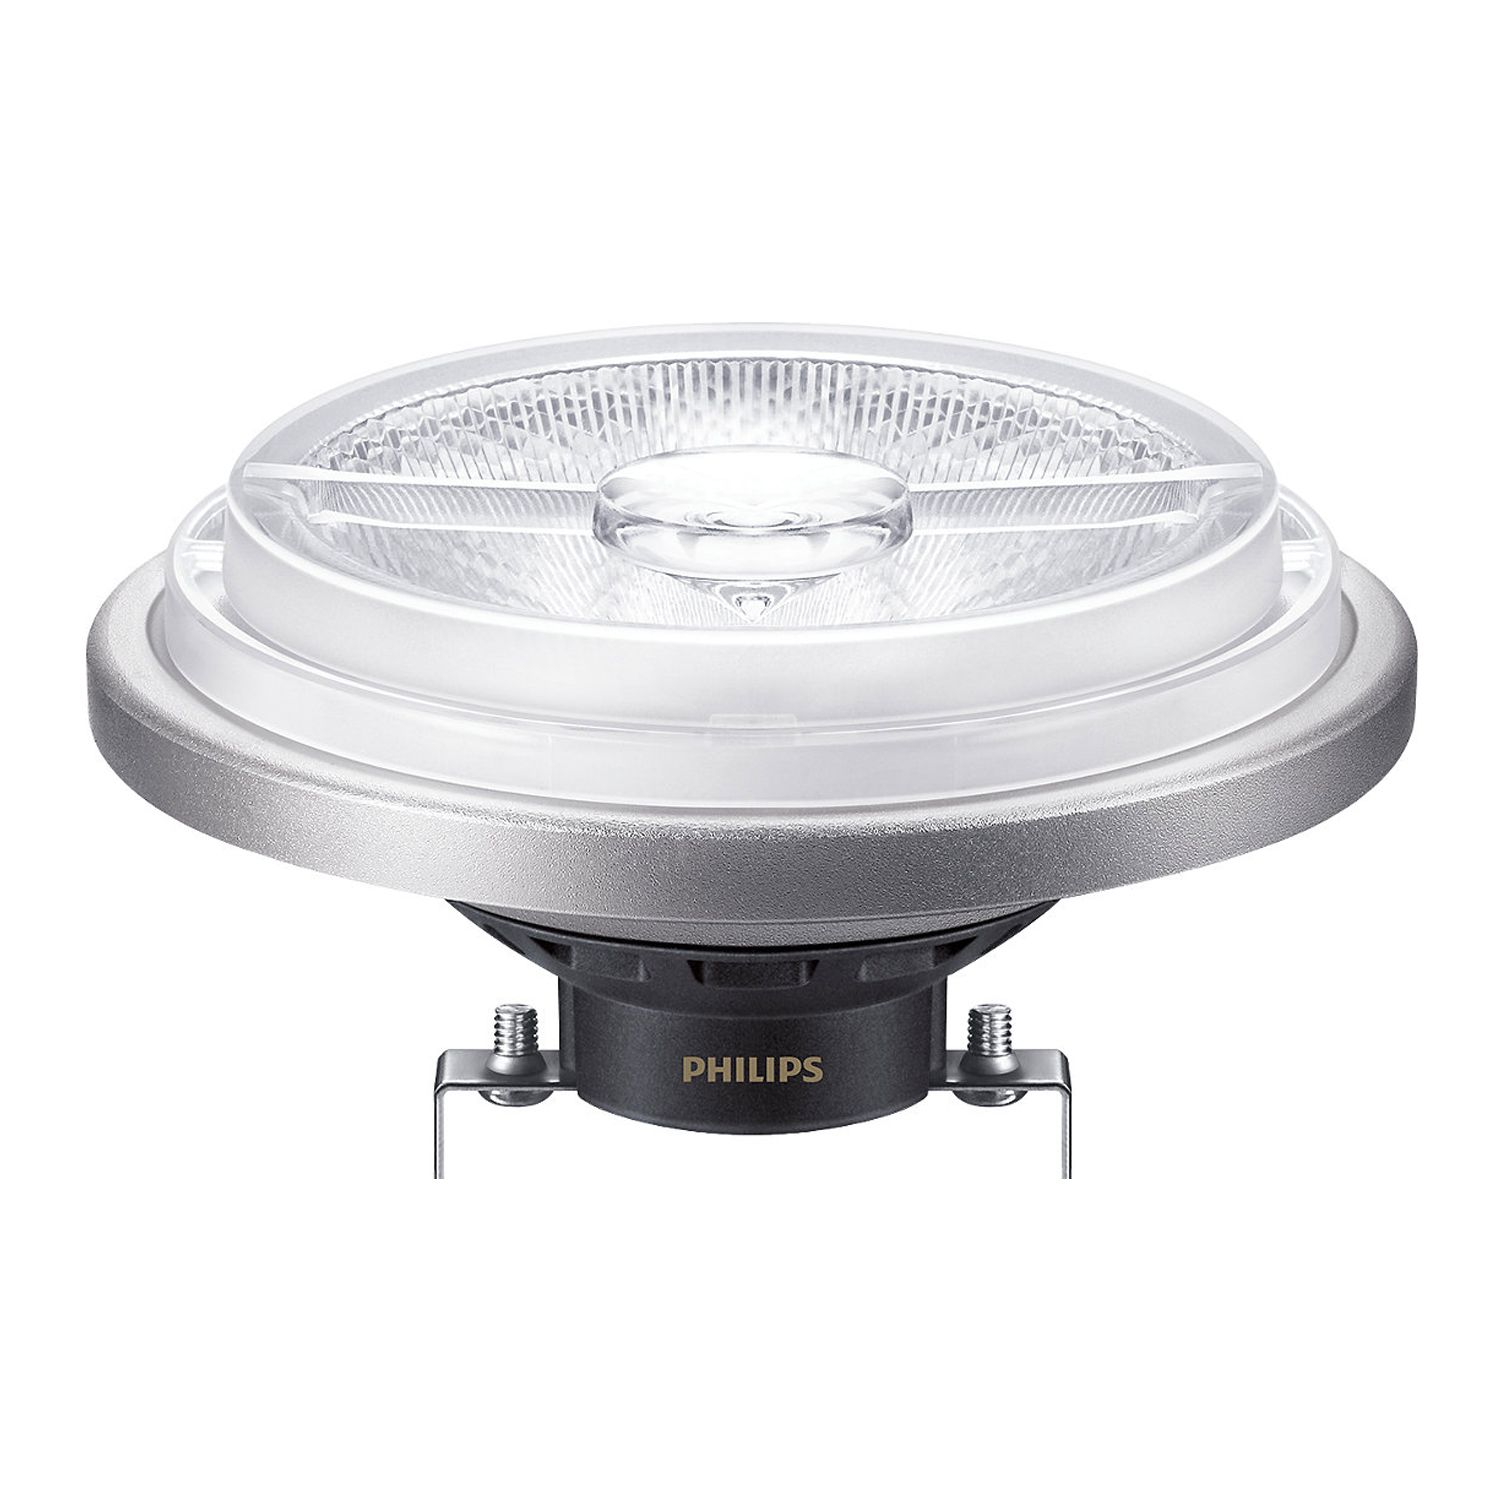 Philips LEDspotLV G53 AR111 (MASTER) 20W 927 45D | Dimmable - Highest Colour Rendering - Replacer for 100W